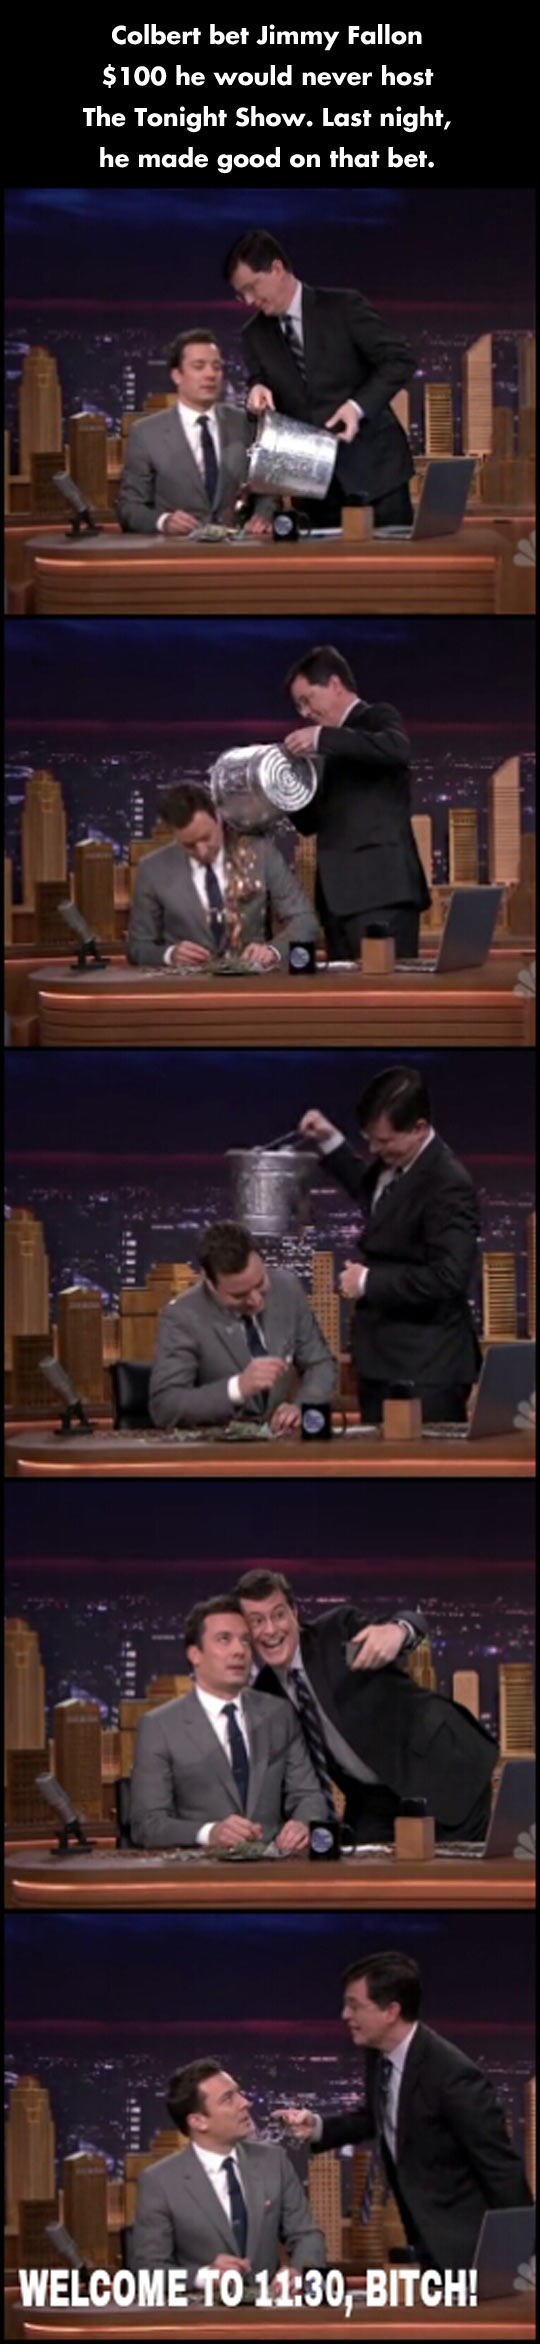 funny-picture-Colbert-Jimmy-Fallon-coins-bucket